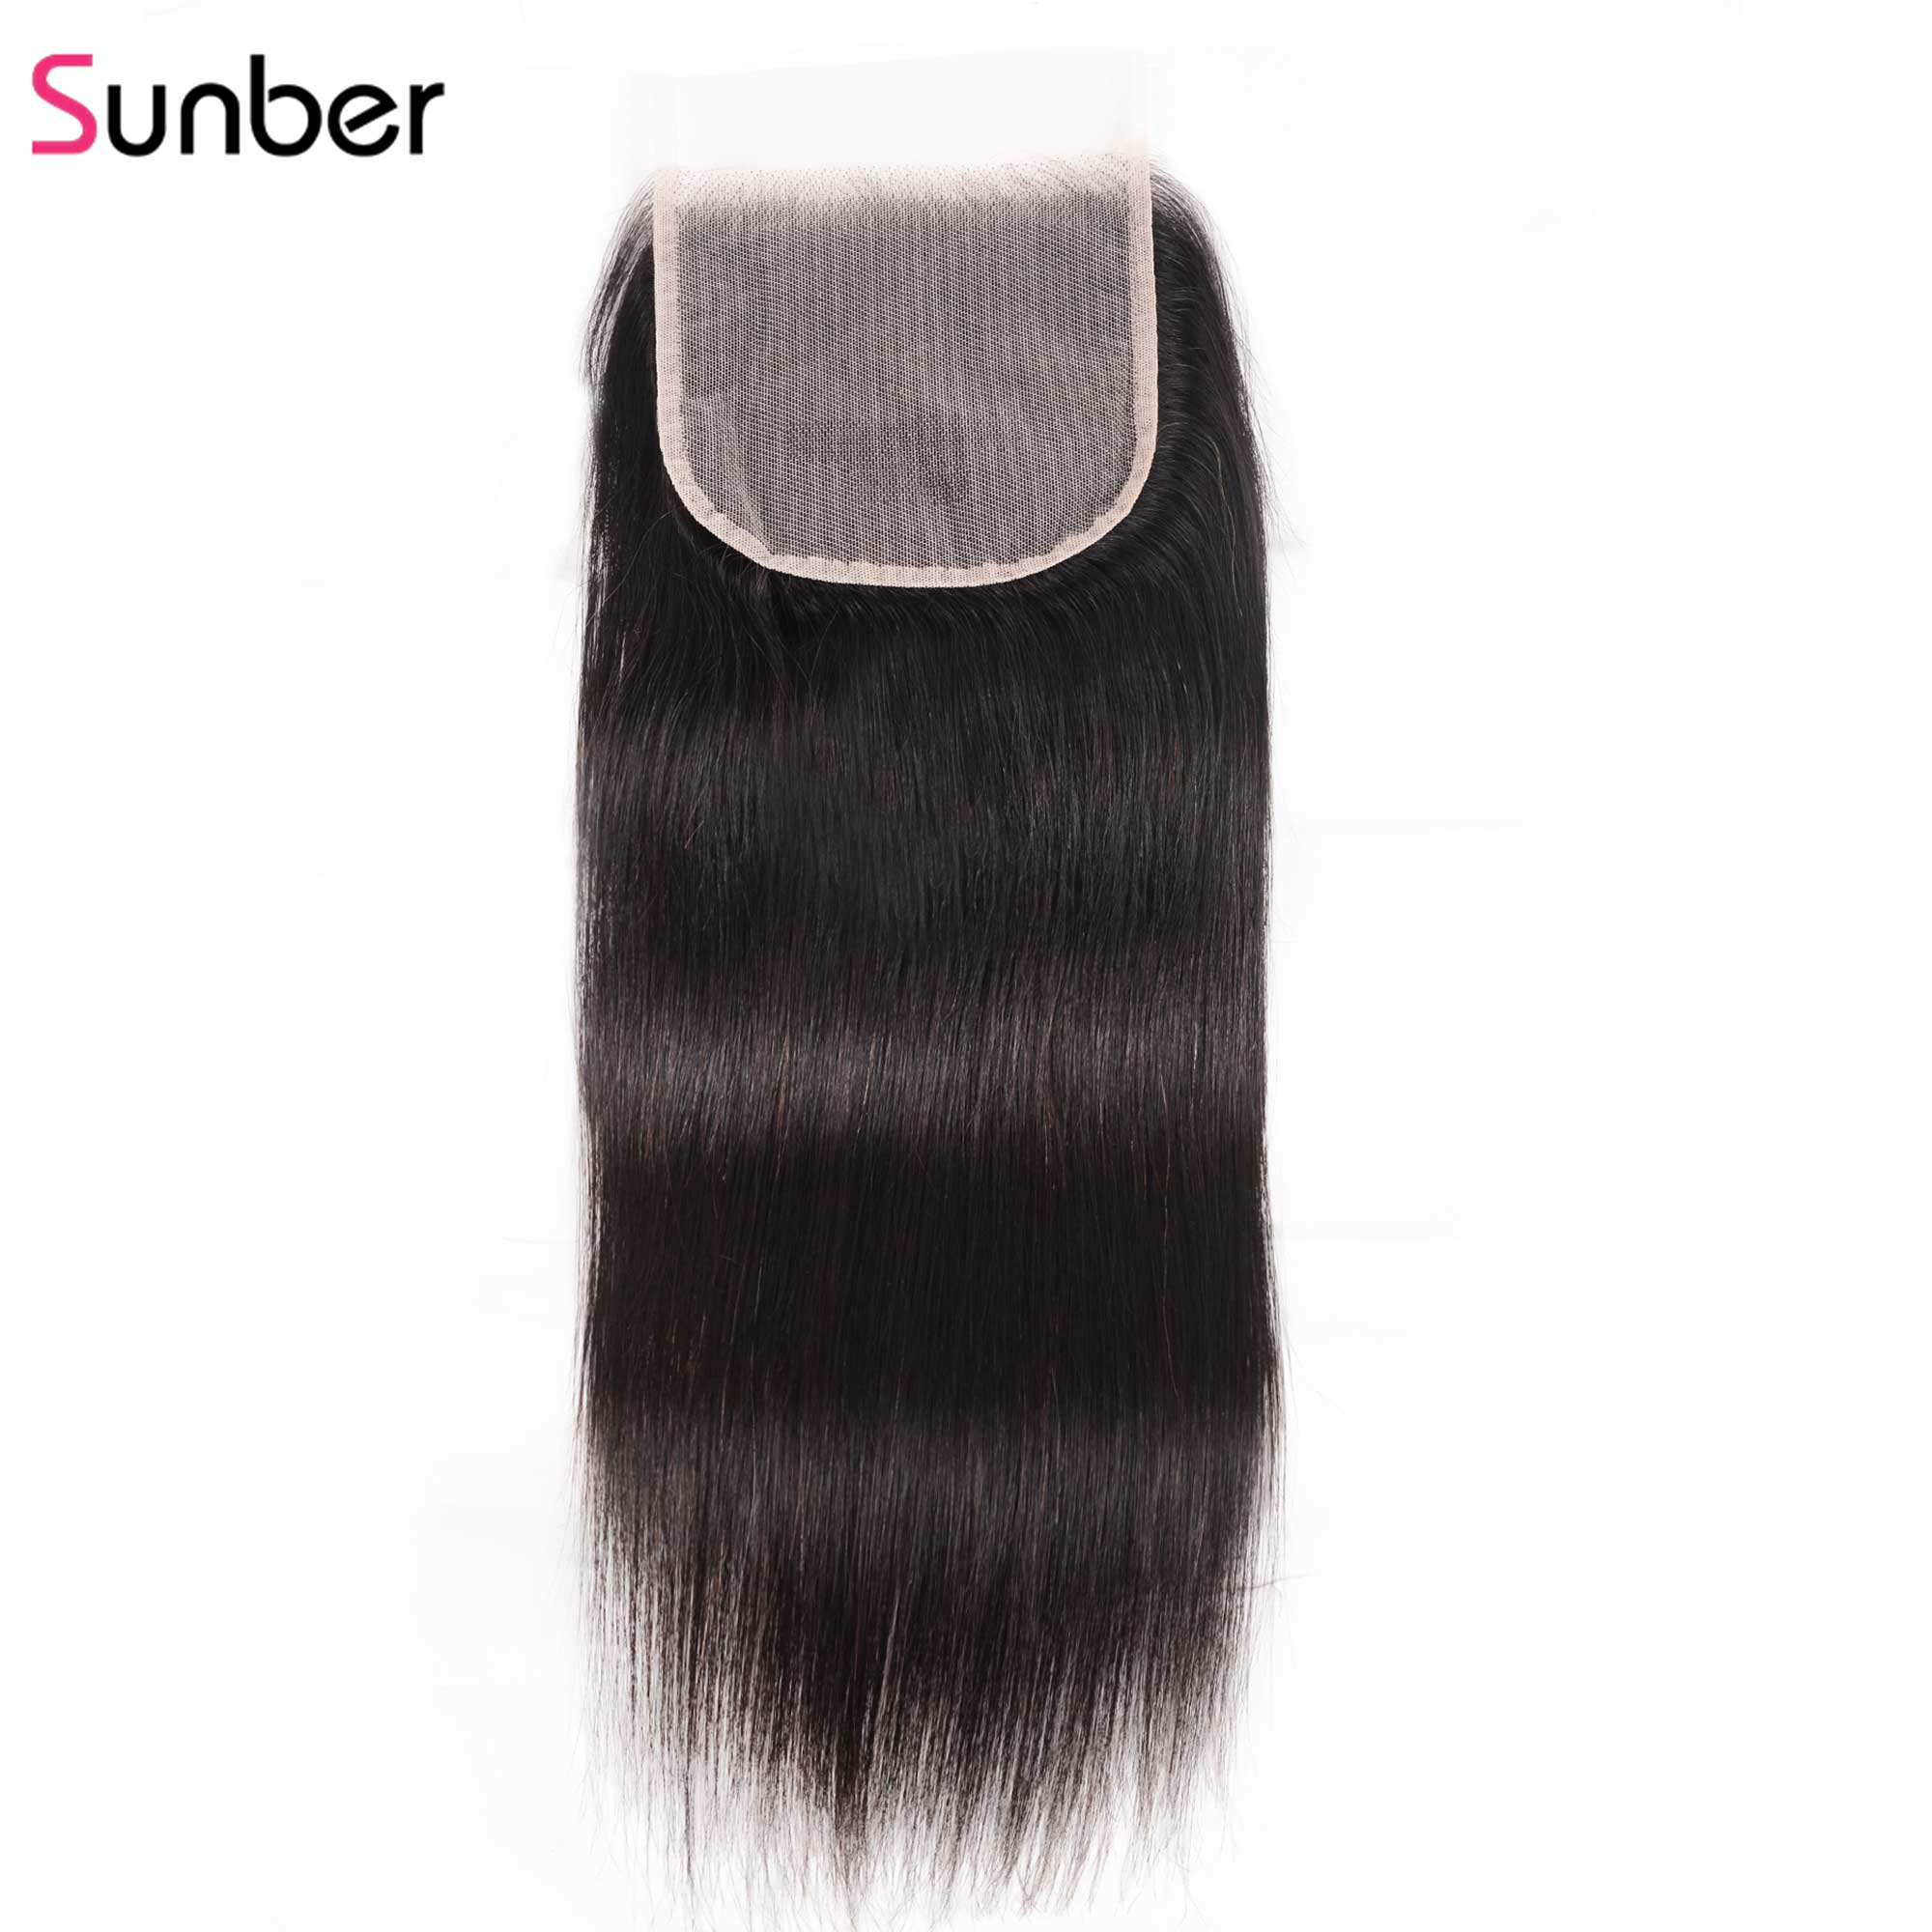 Sunber Hair Straight 5X5 Preuvian Transparent Lace Closure Hair Extension 8-18 inch 100% Human Remy Hair HD Closure(China)